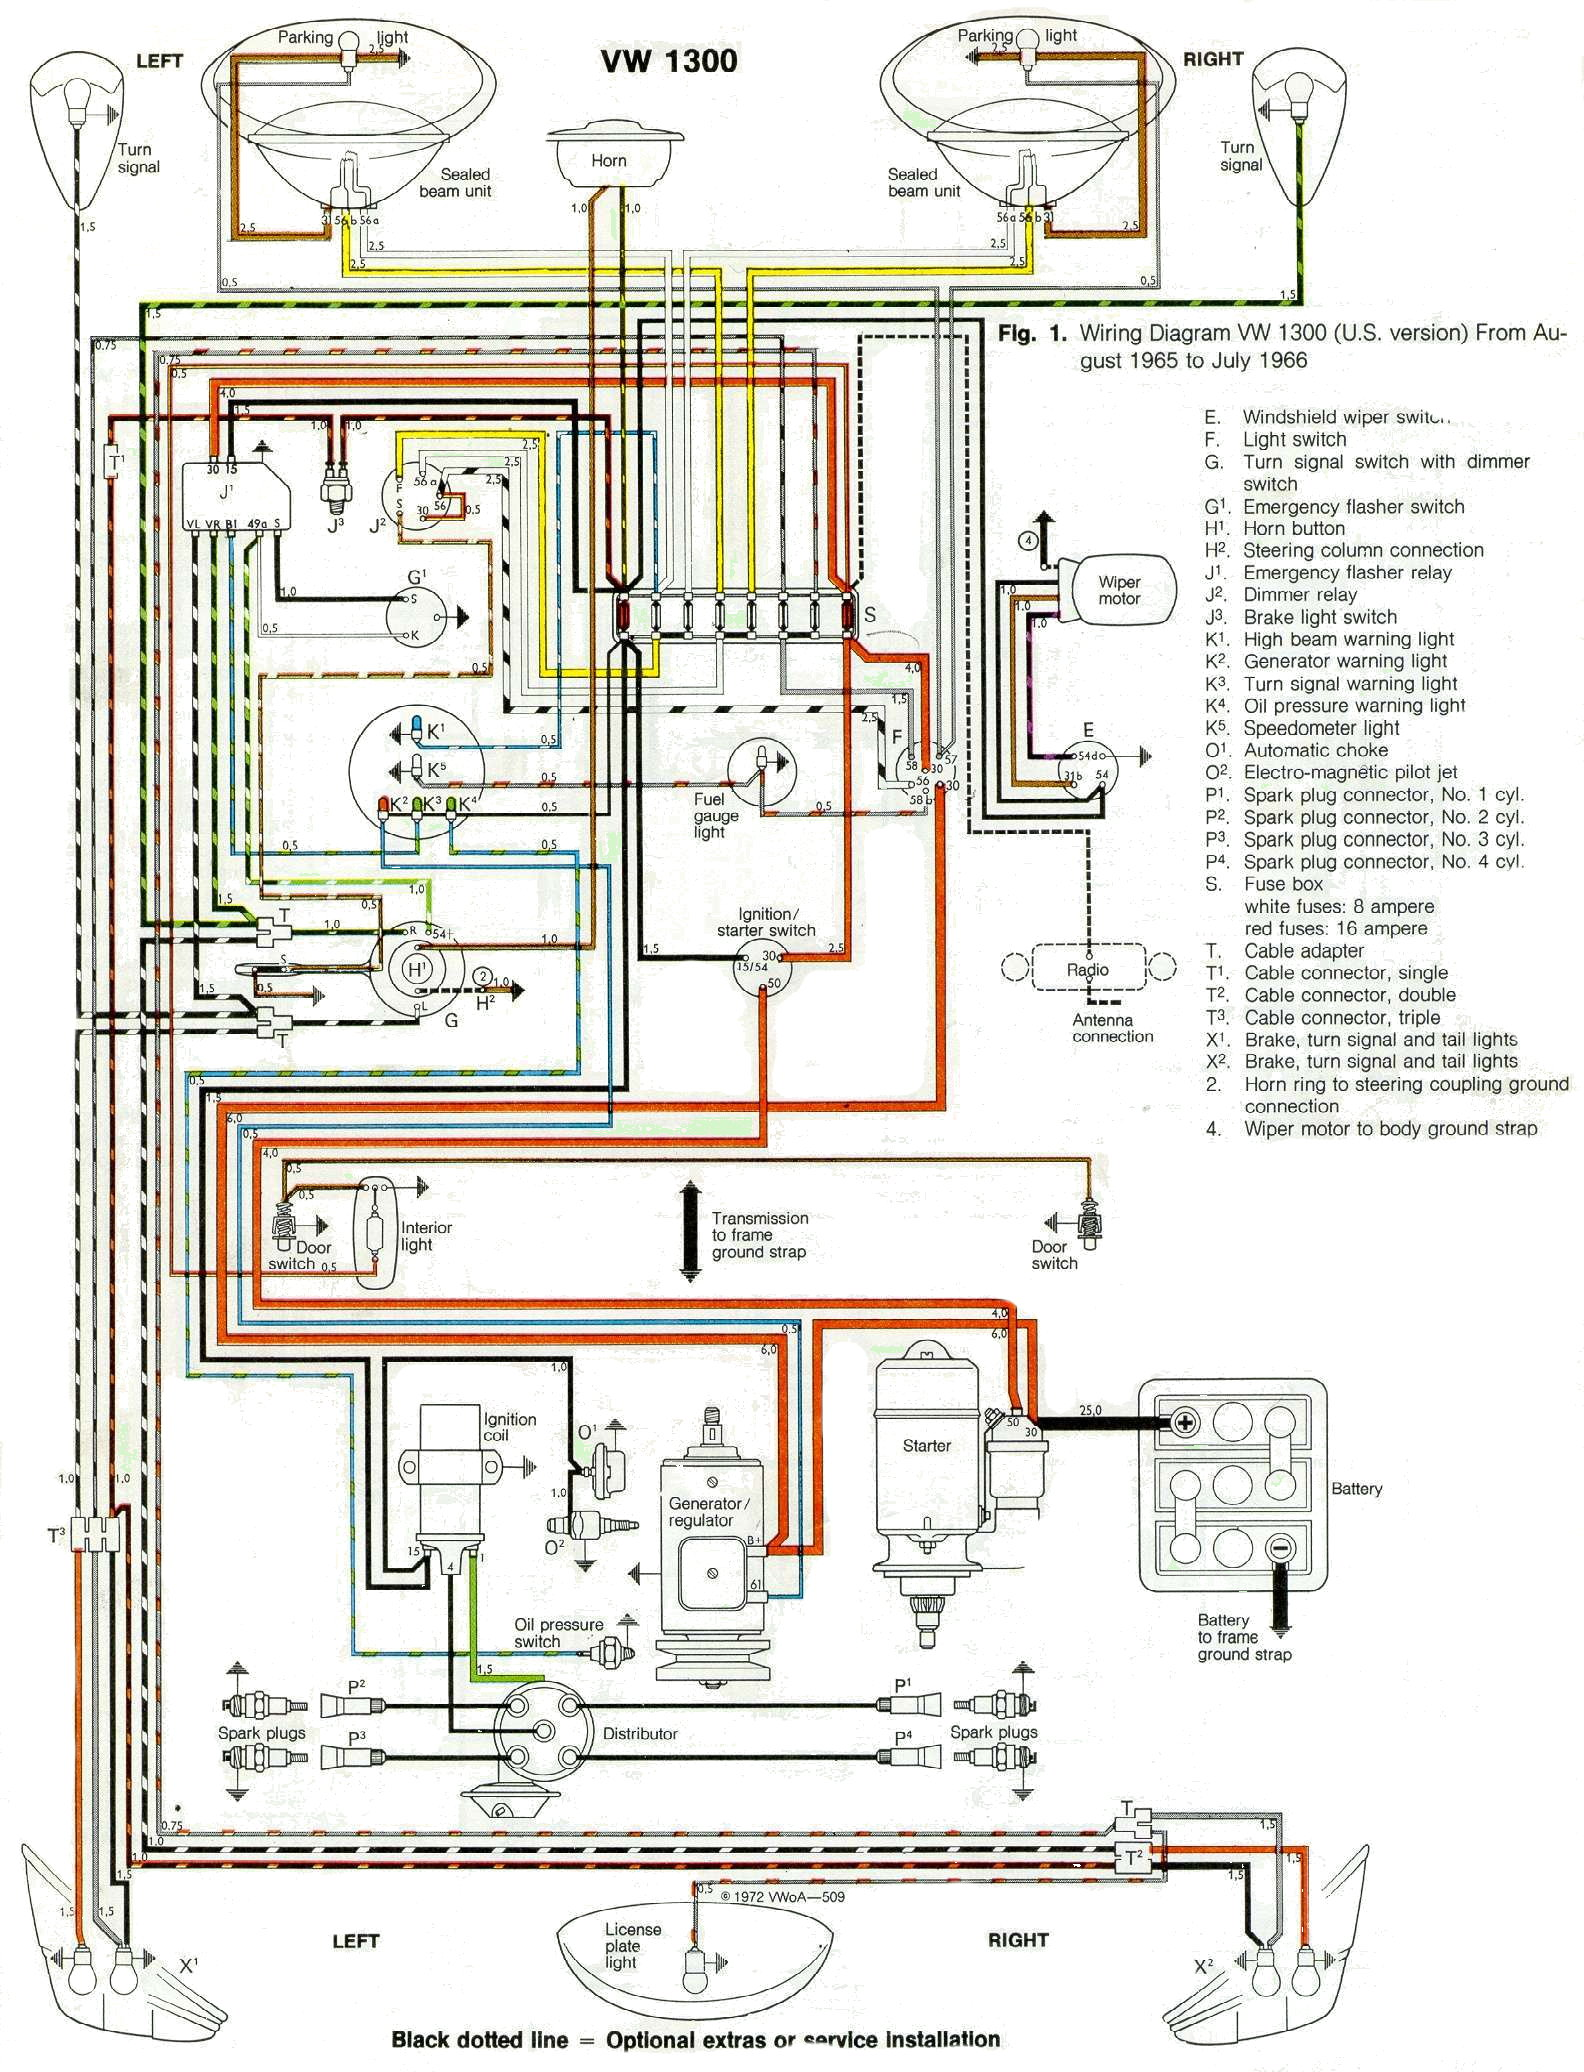 Vw Wiring Harness Diagram Guide And Troubleshooting Of Jetta Door 1966 Rh 1966vwbeetle Com 2001 Passat 2006